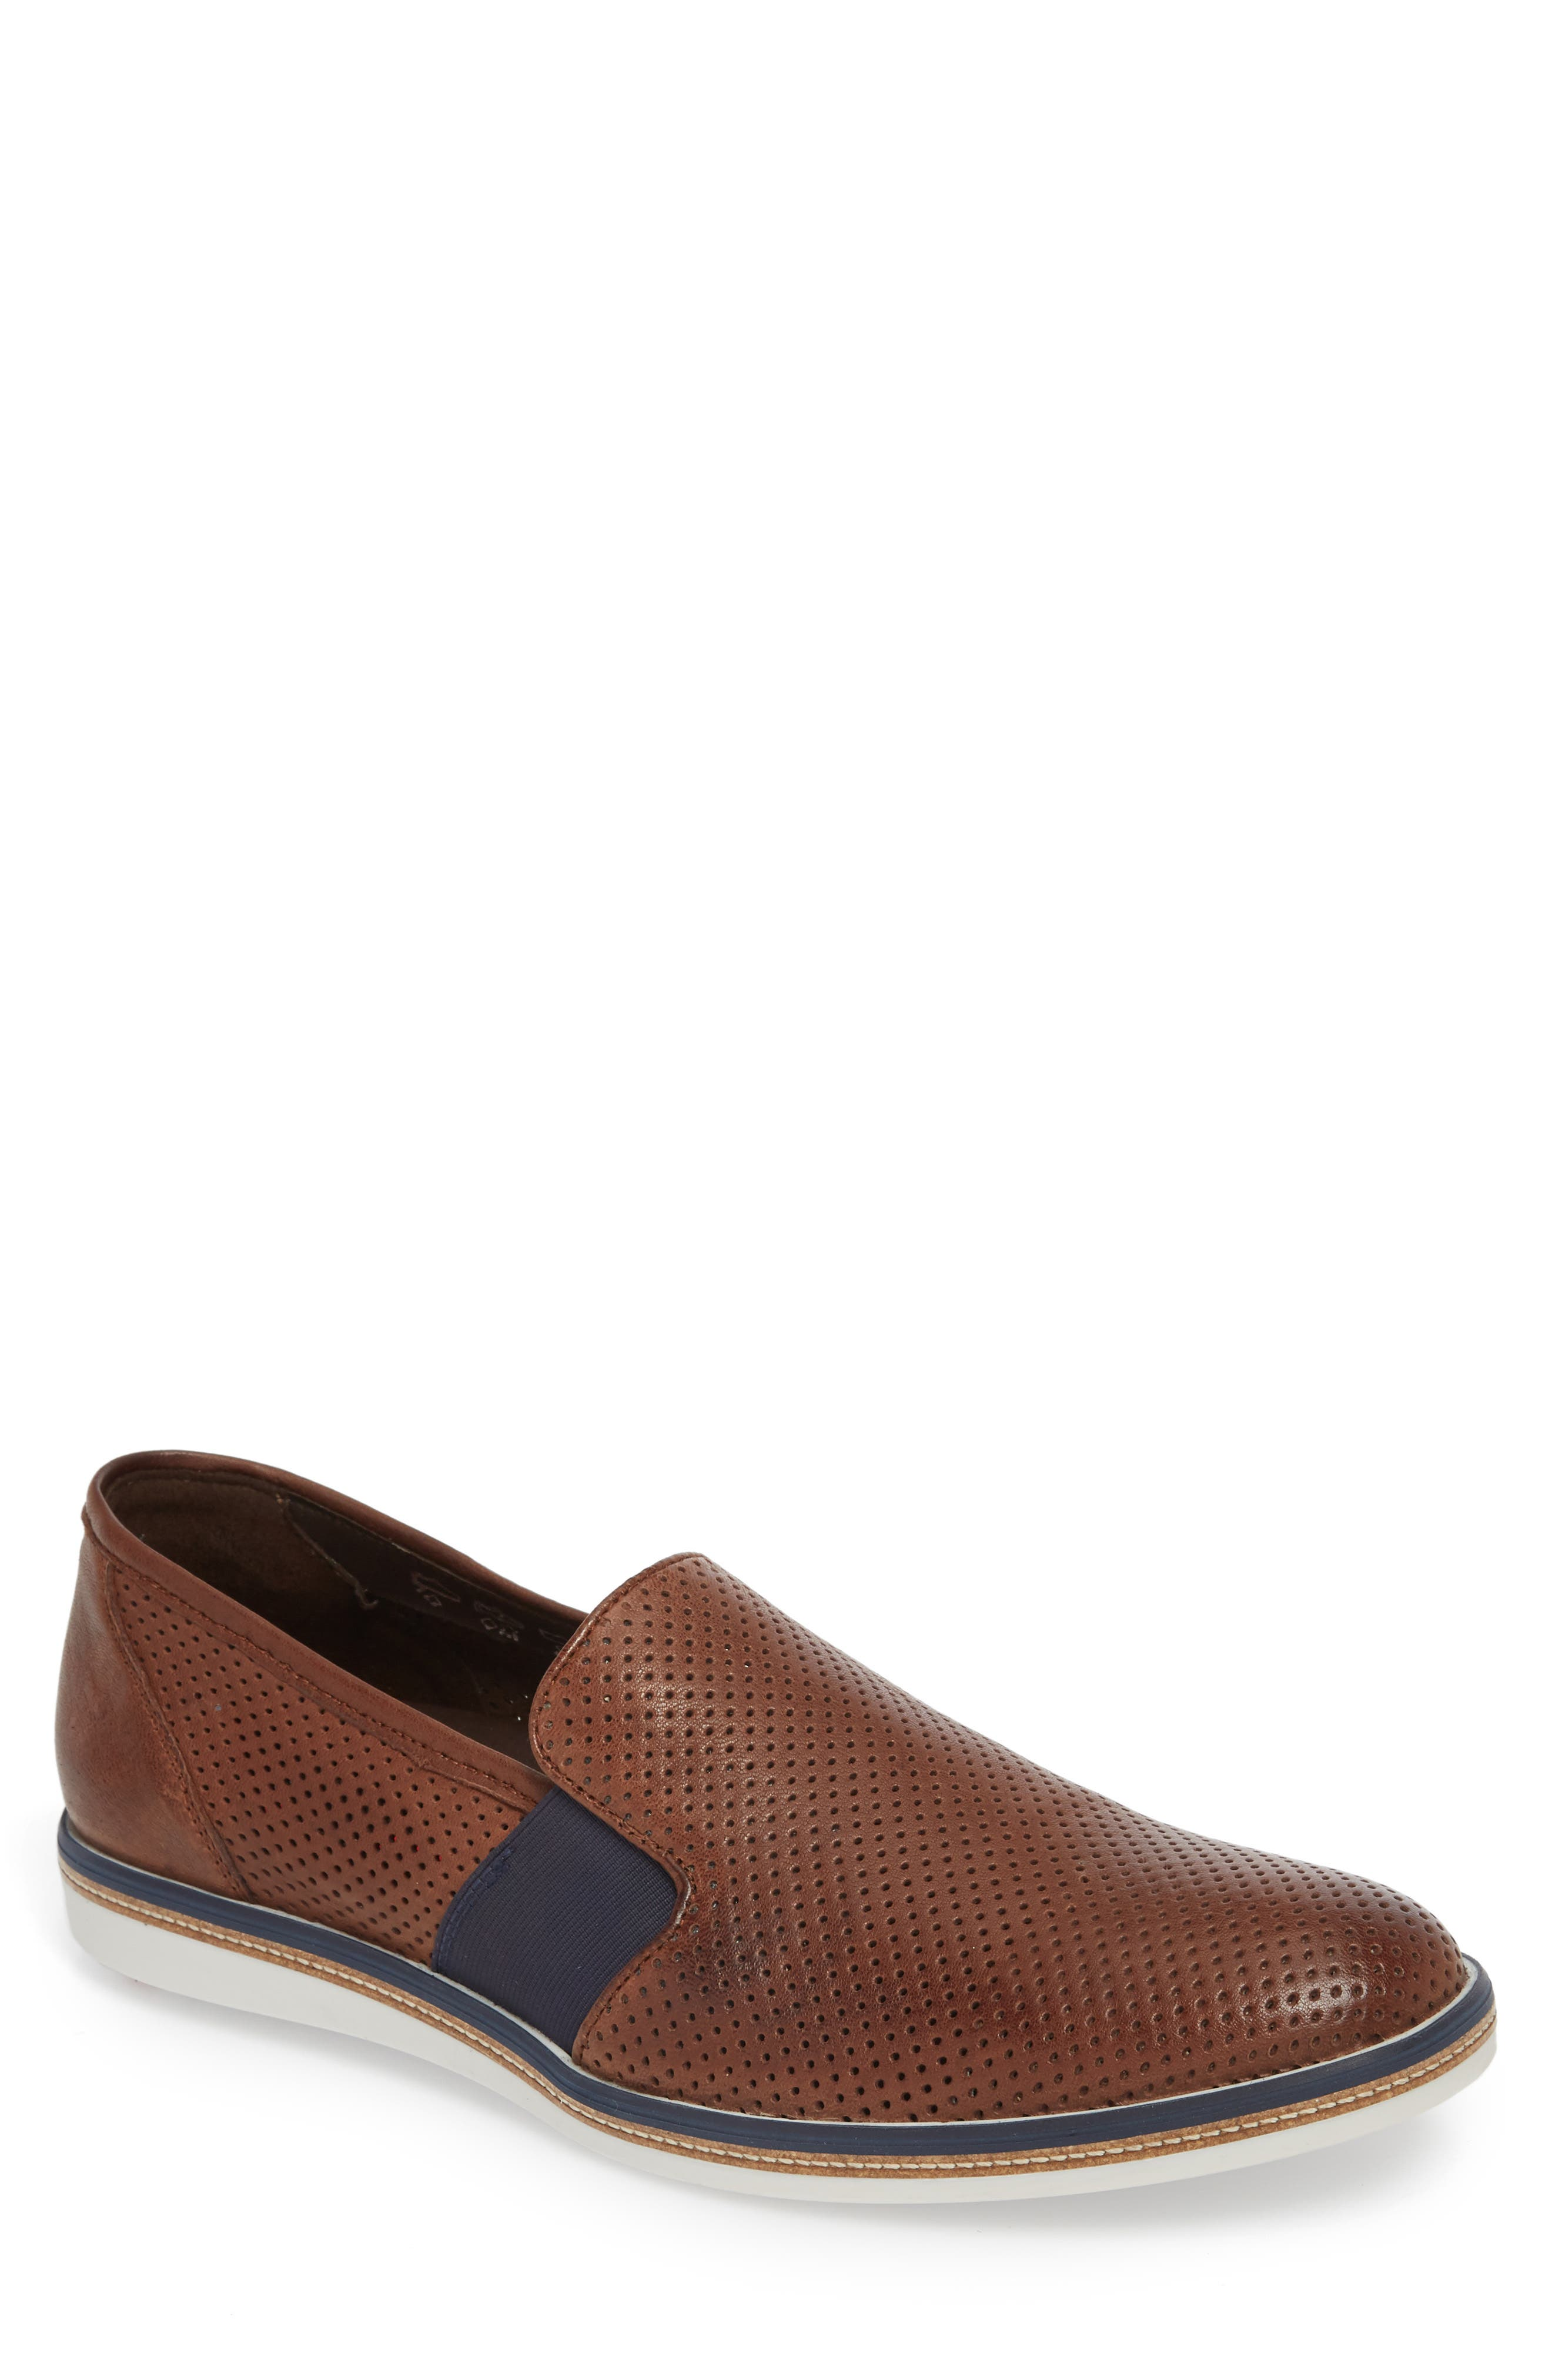 Alister Perforated Loafer,                         Main,                         color, TOBACCO LEATHER